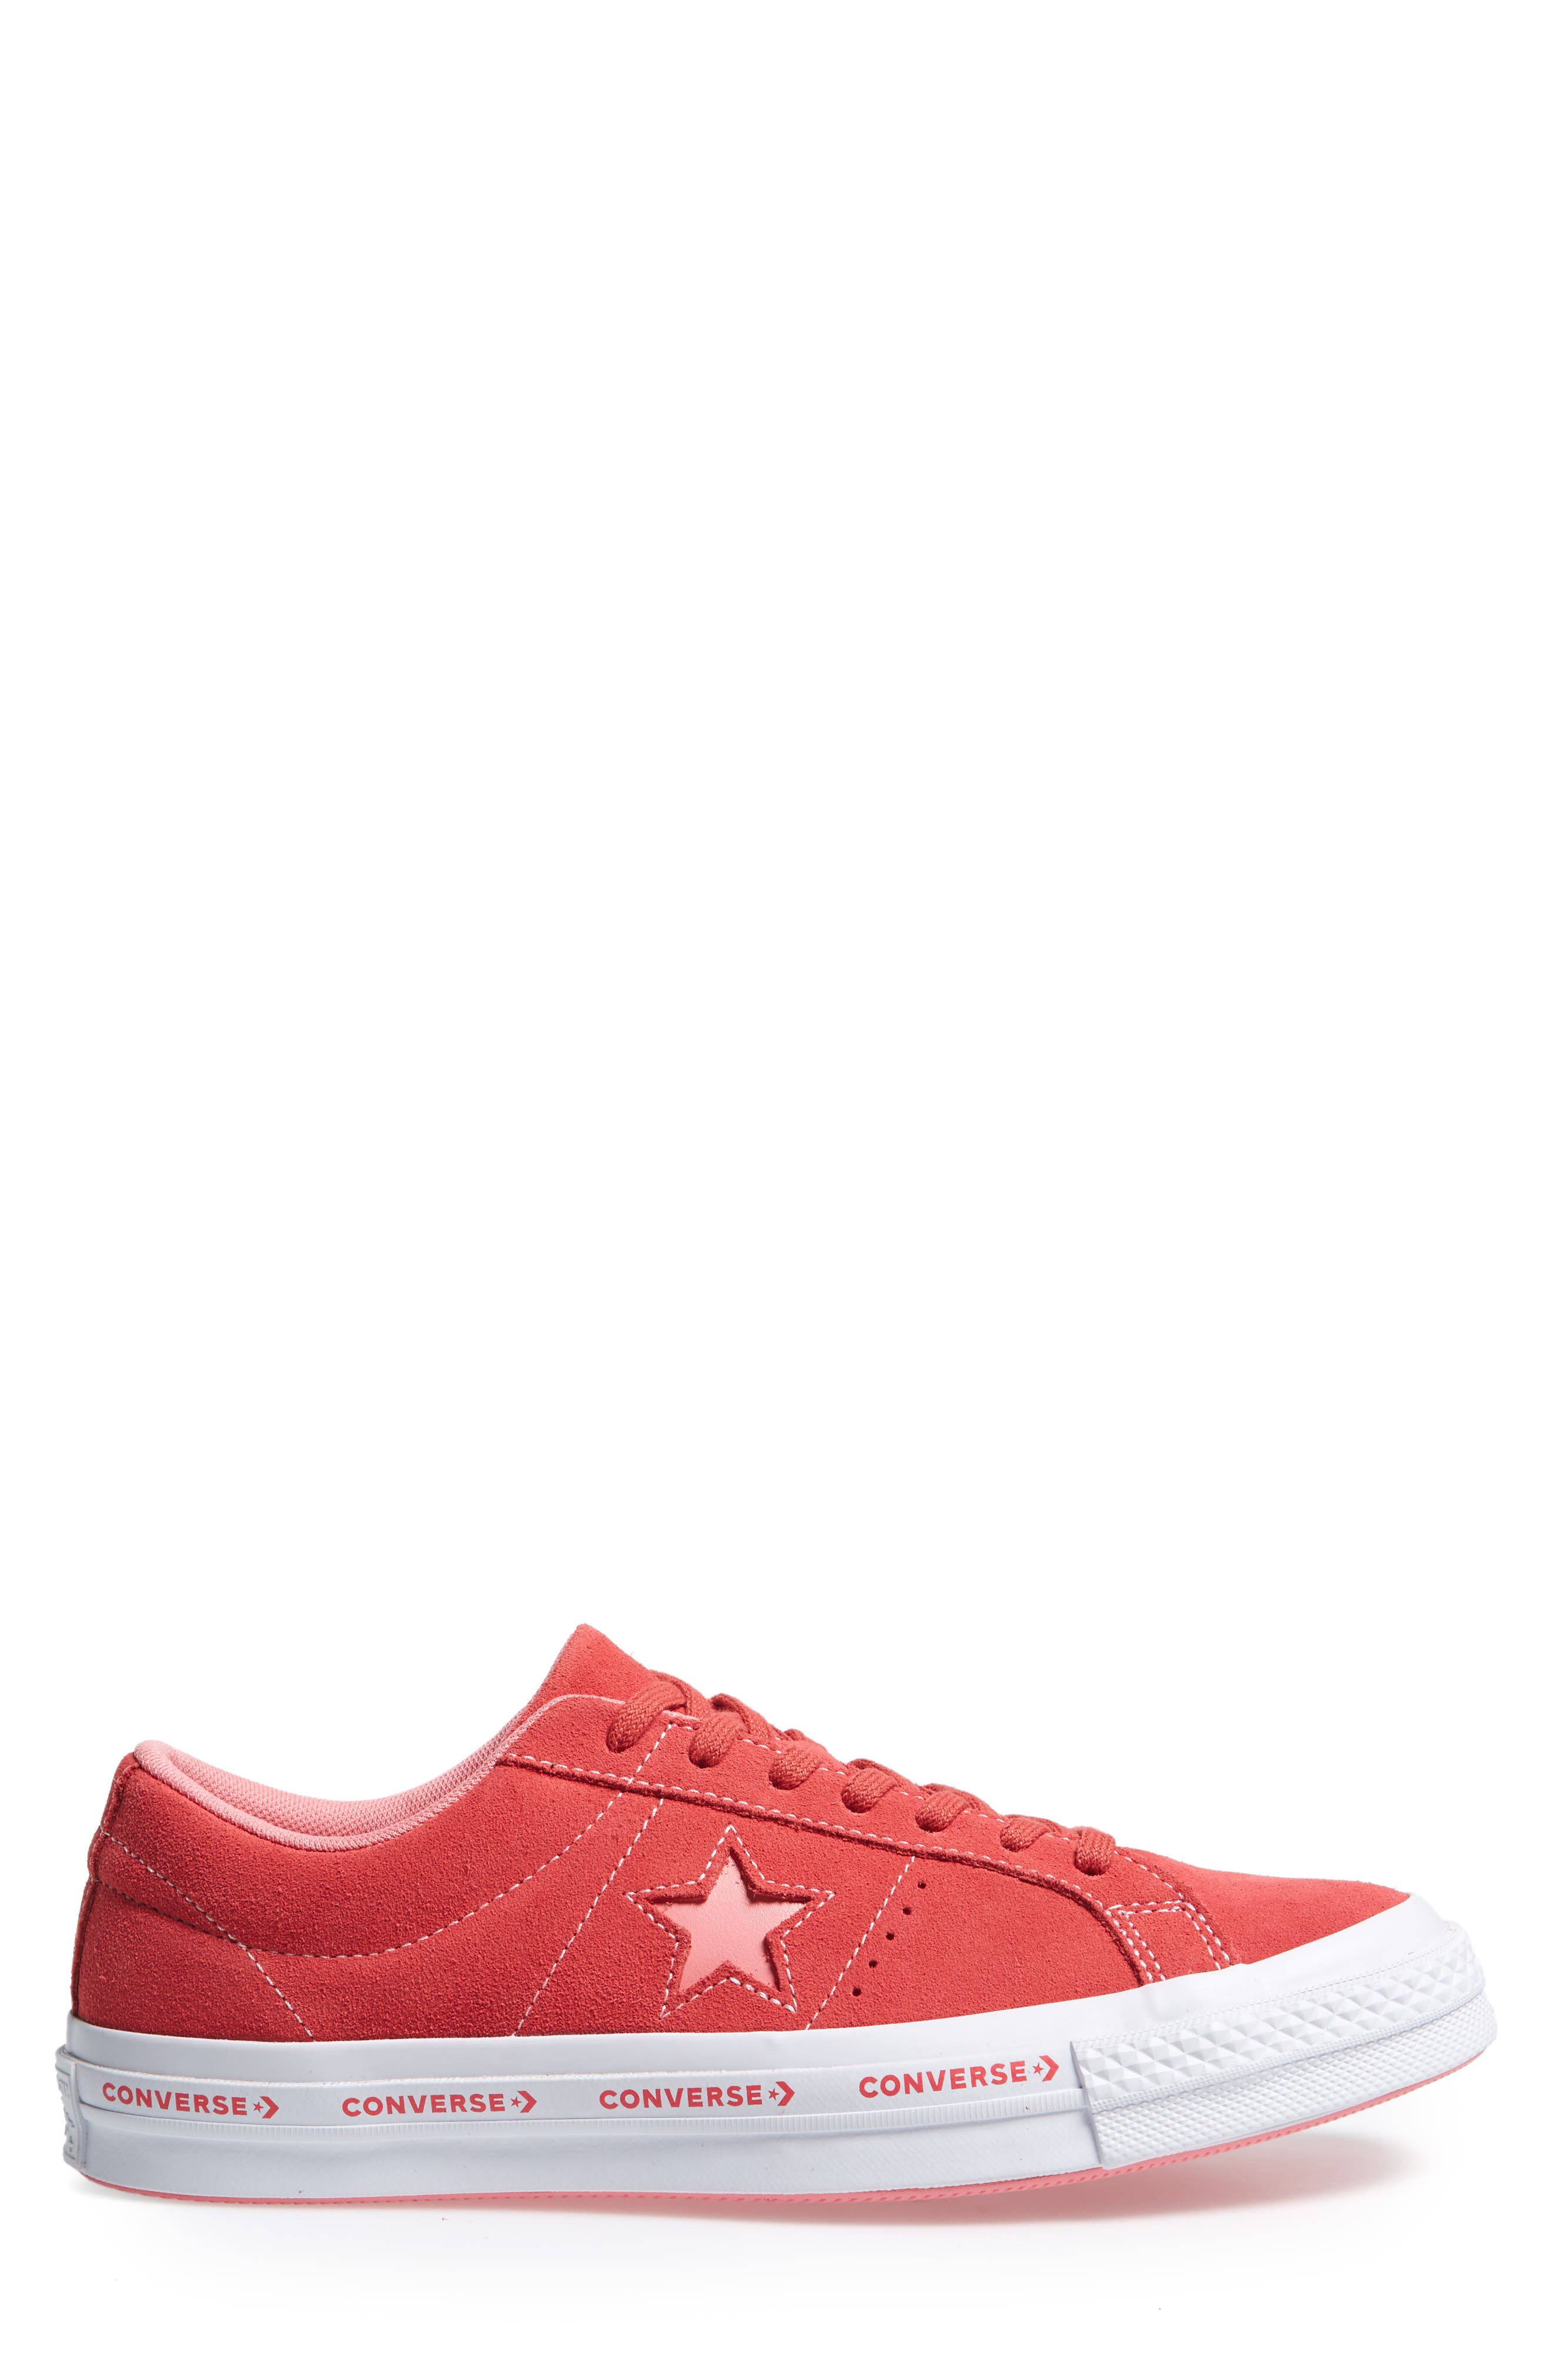 Chuck Taylor<sup>®</sup> One Star Pinstripe Sneaker,                             Alternate thumbnail 3, color,                             Paradise Pink Suede